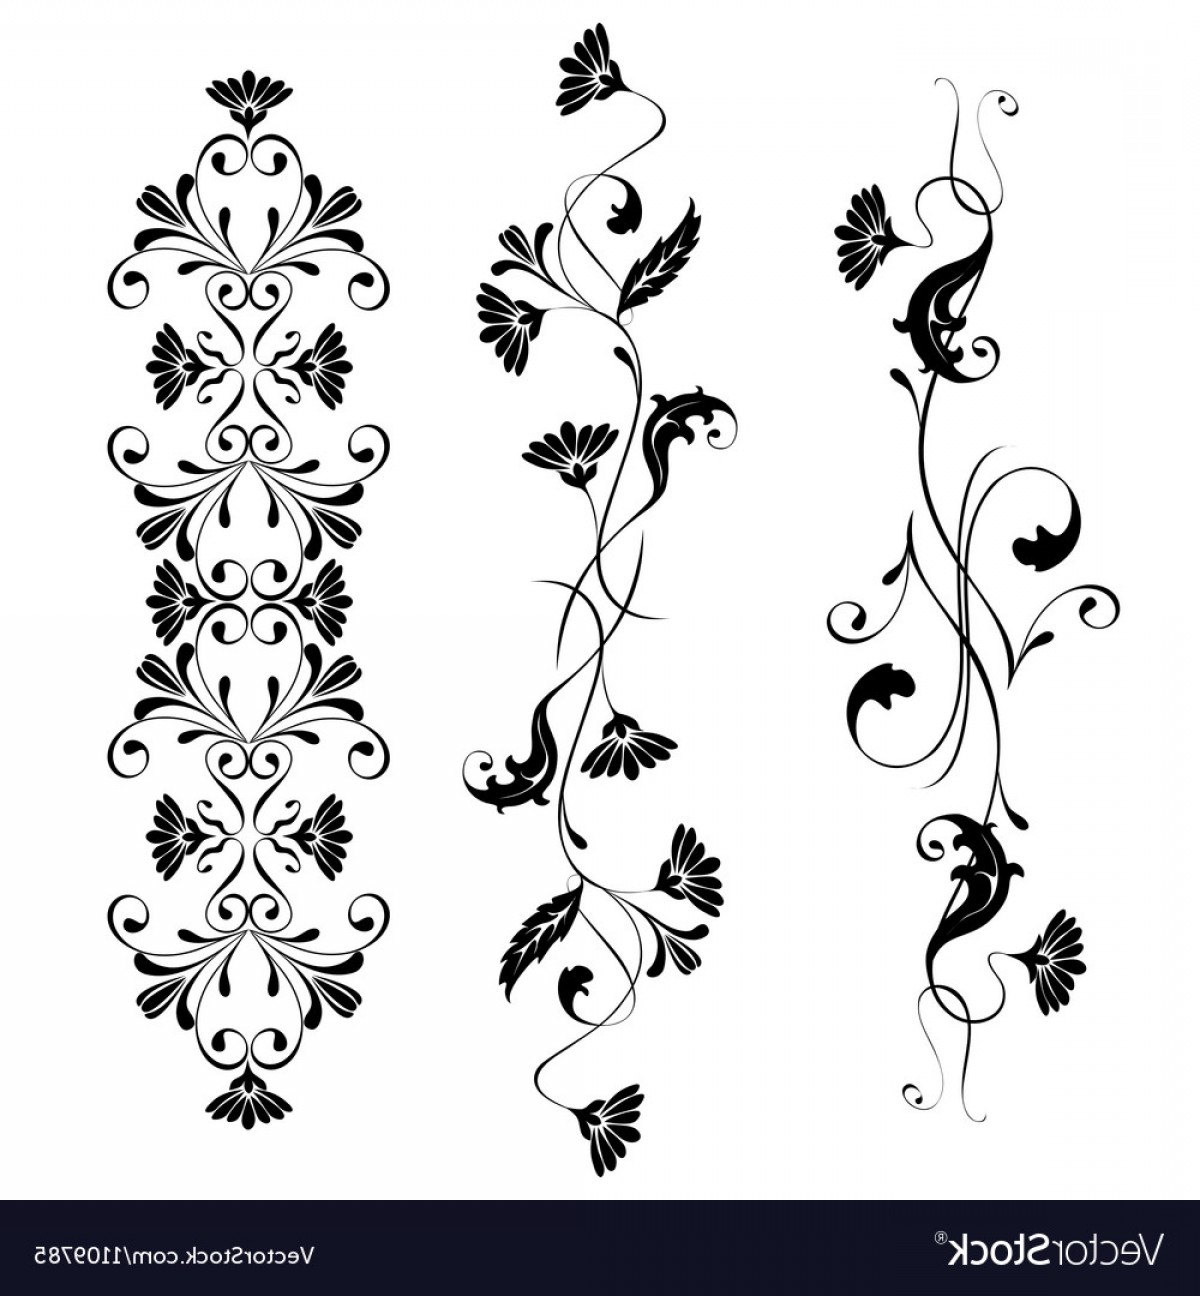 Flower Elements Vector: Set Swirling Decorative Floral Elements Vector